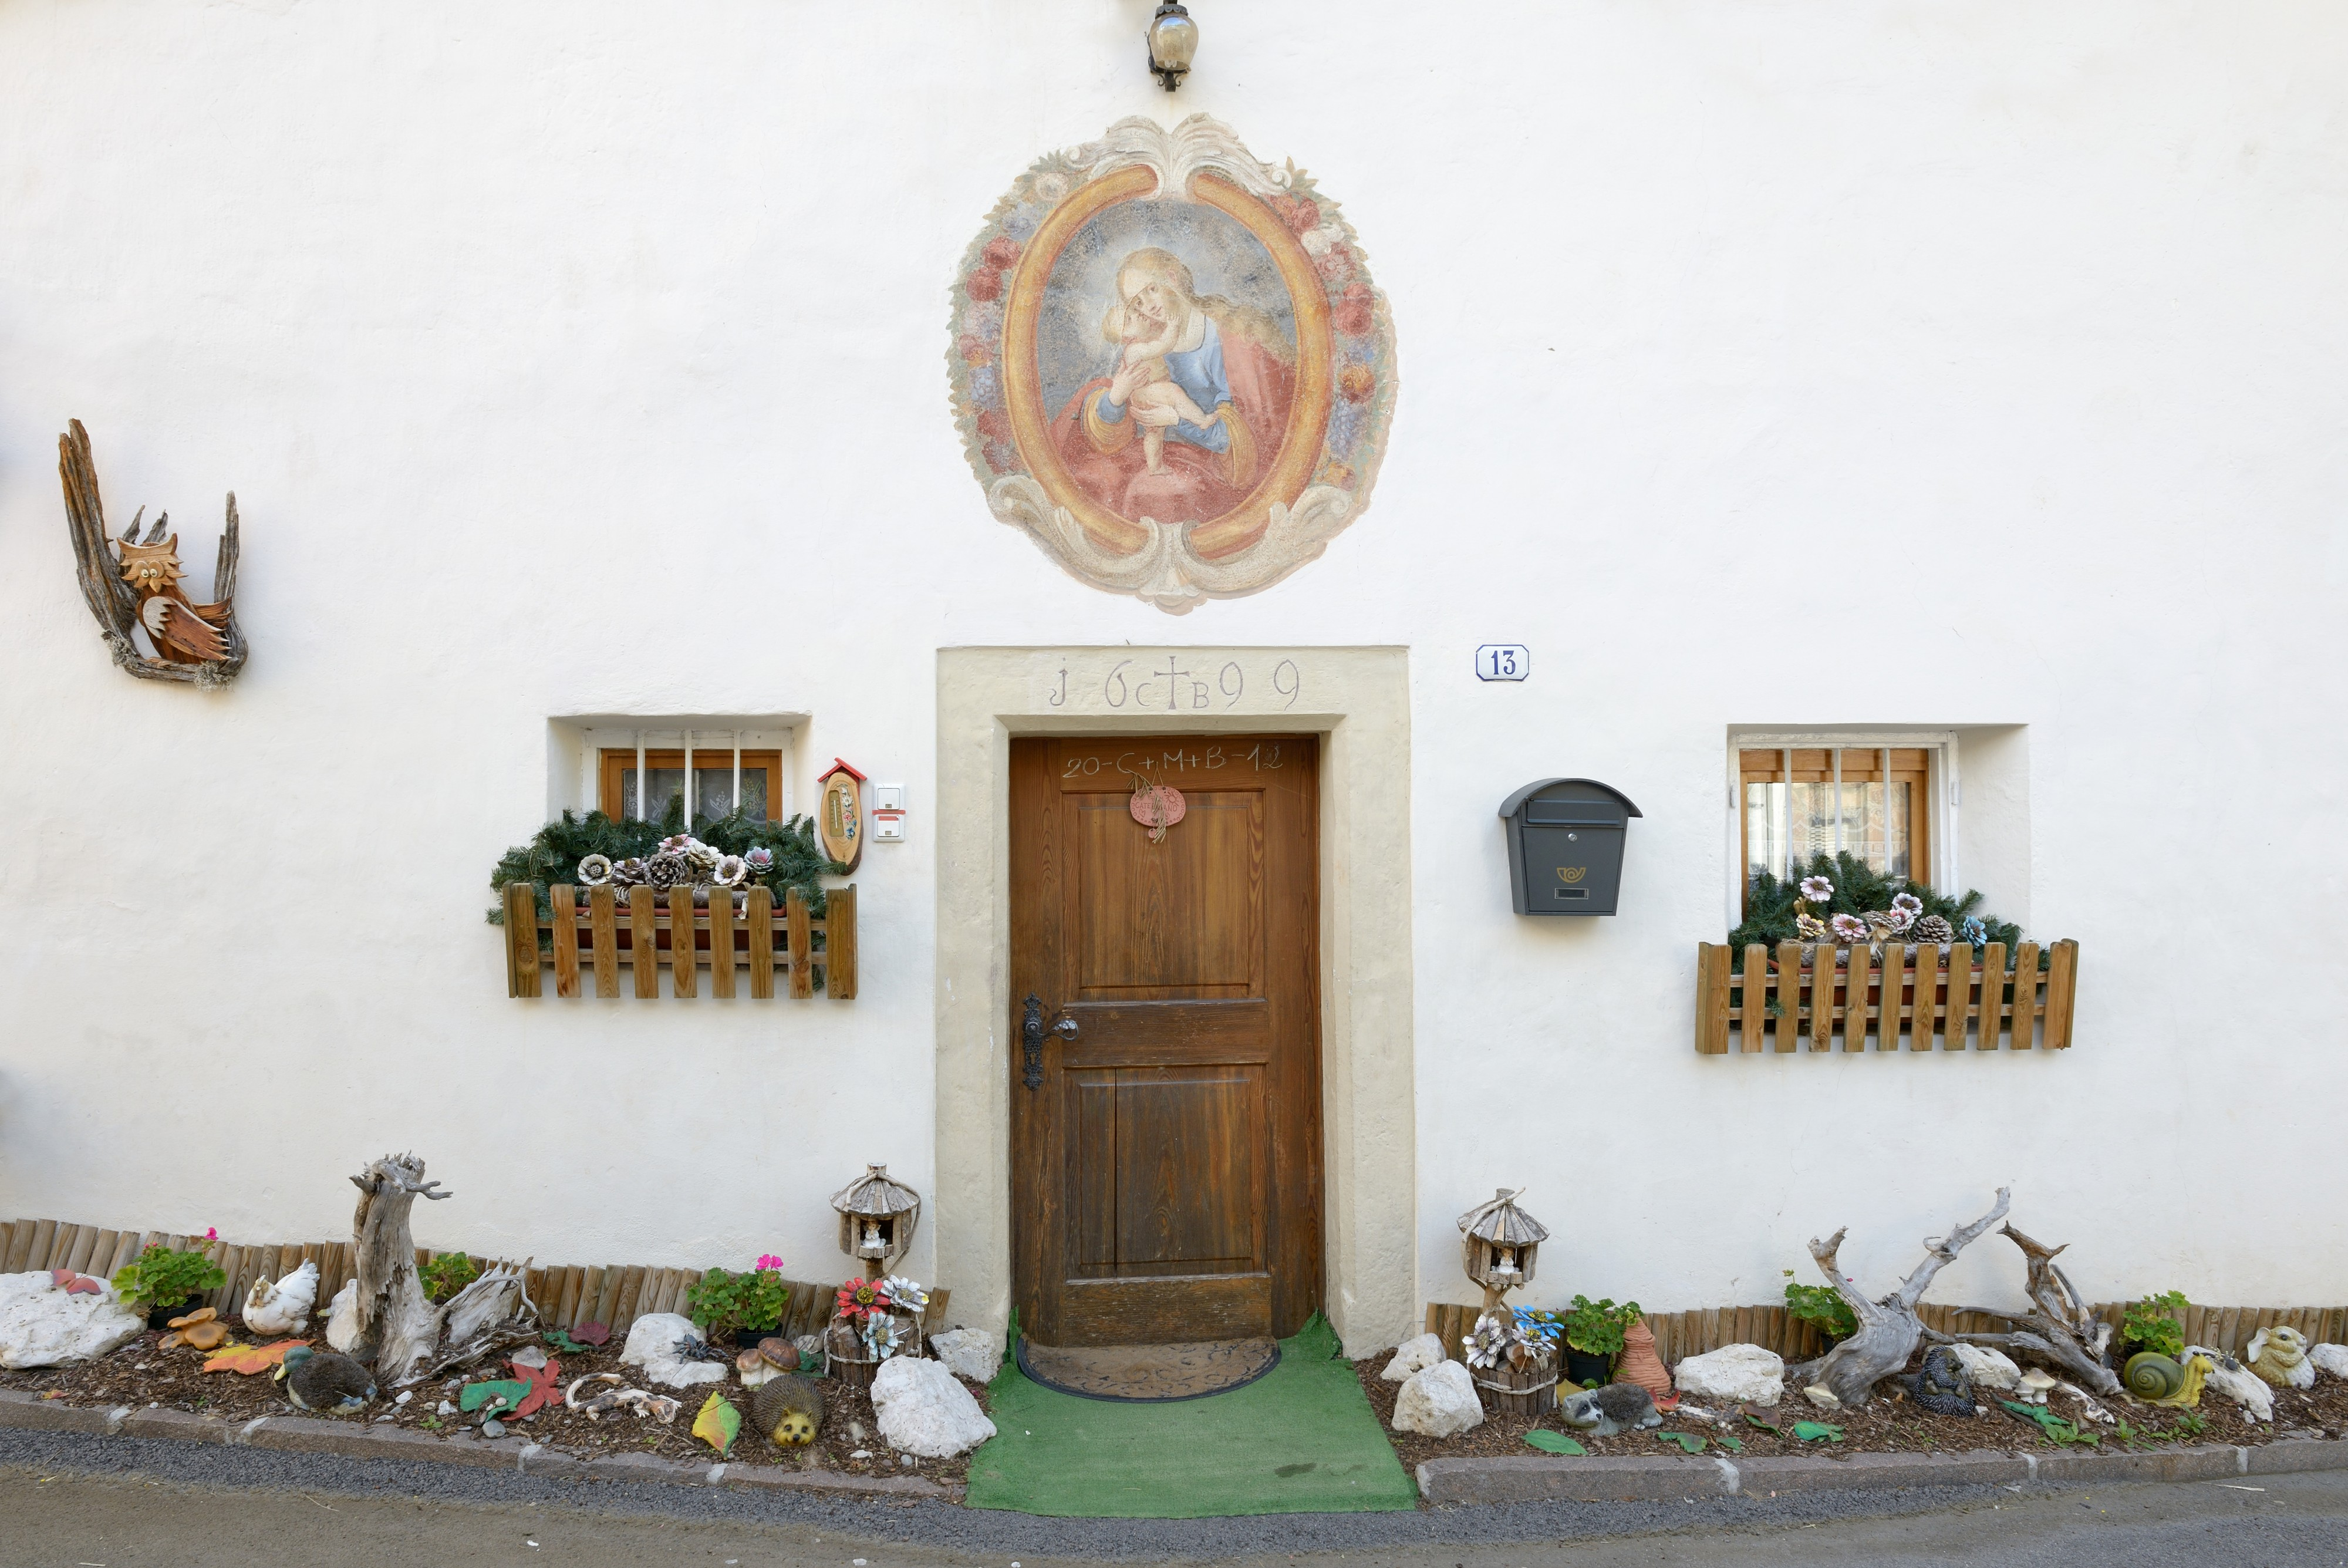 Entrance to the ancient rectory in Bulla